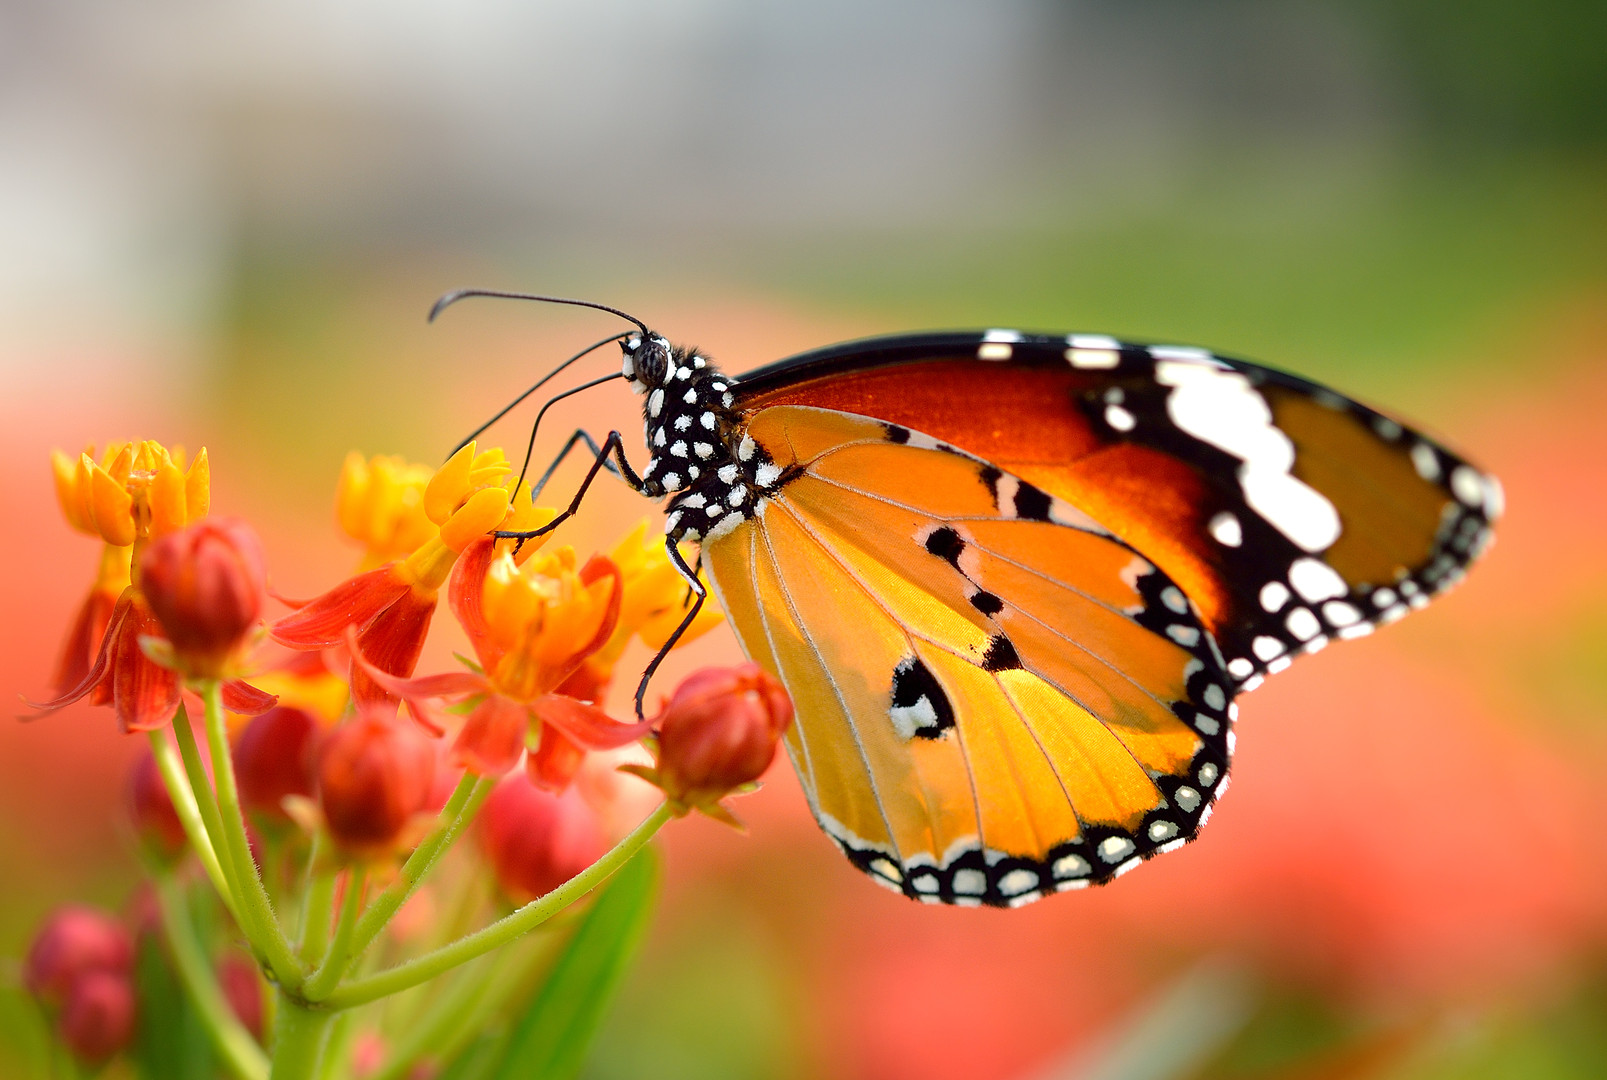 Butterfly On Orange Flower In The Garden